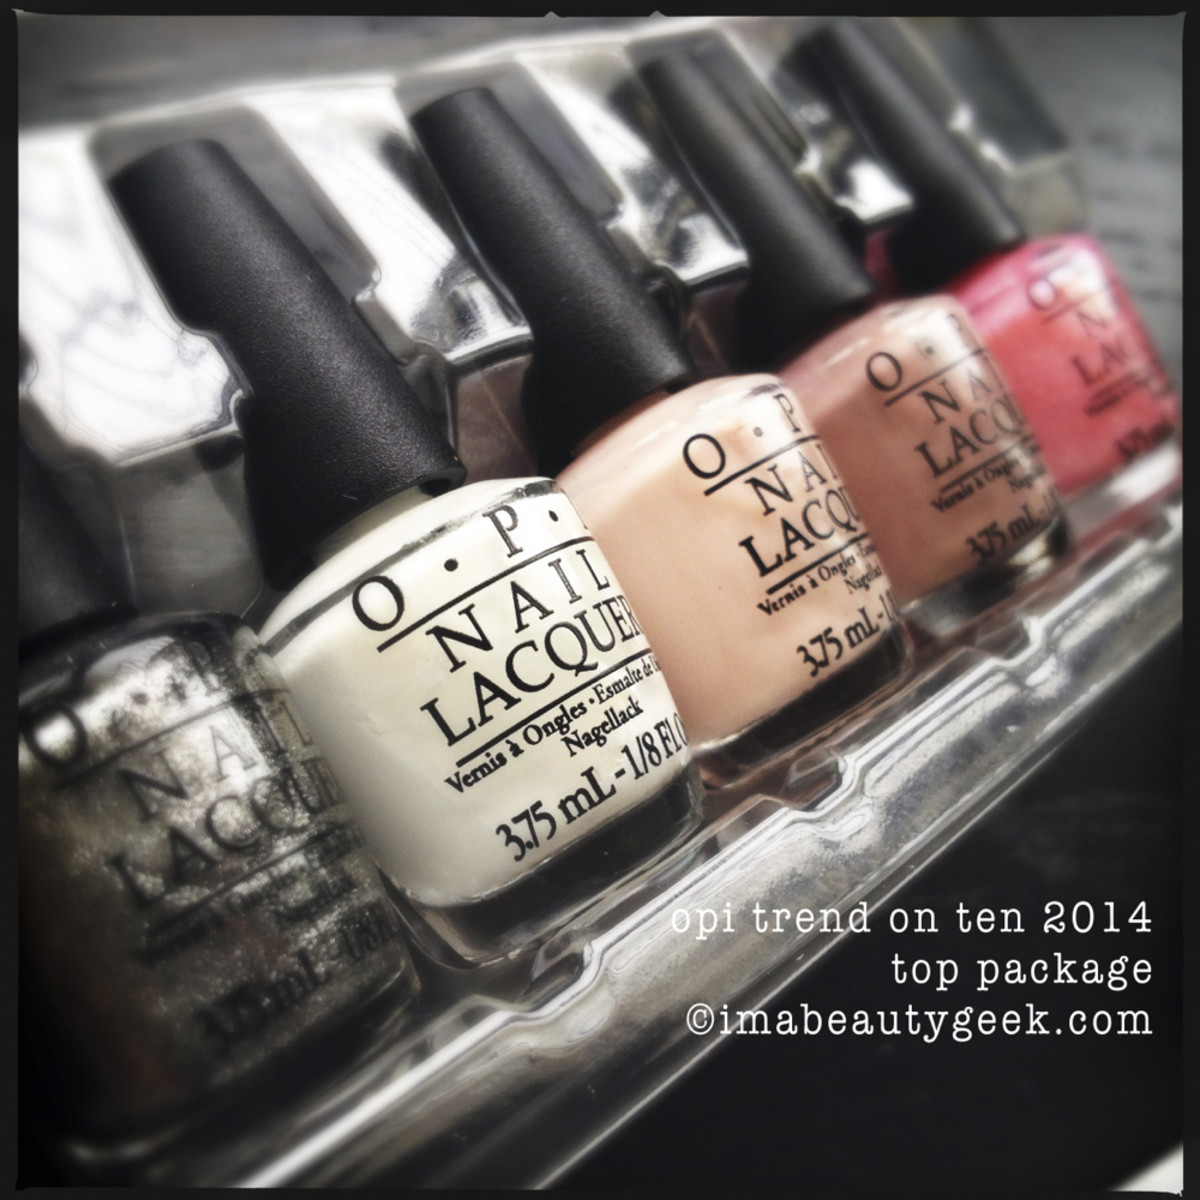 OPI Holiday 2014 Trend on Ten Top Row